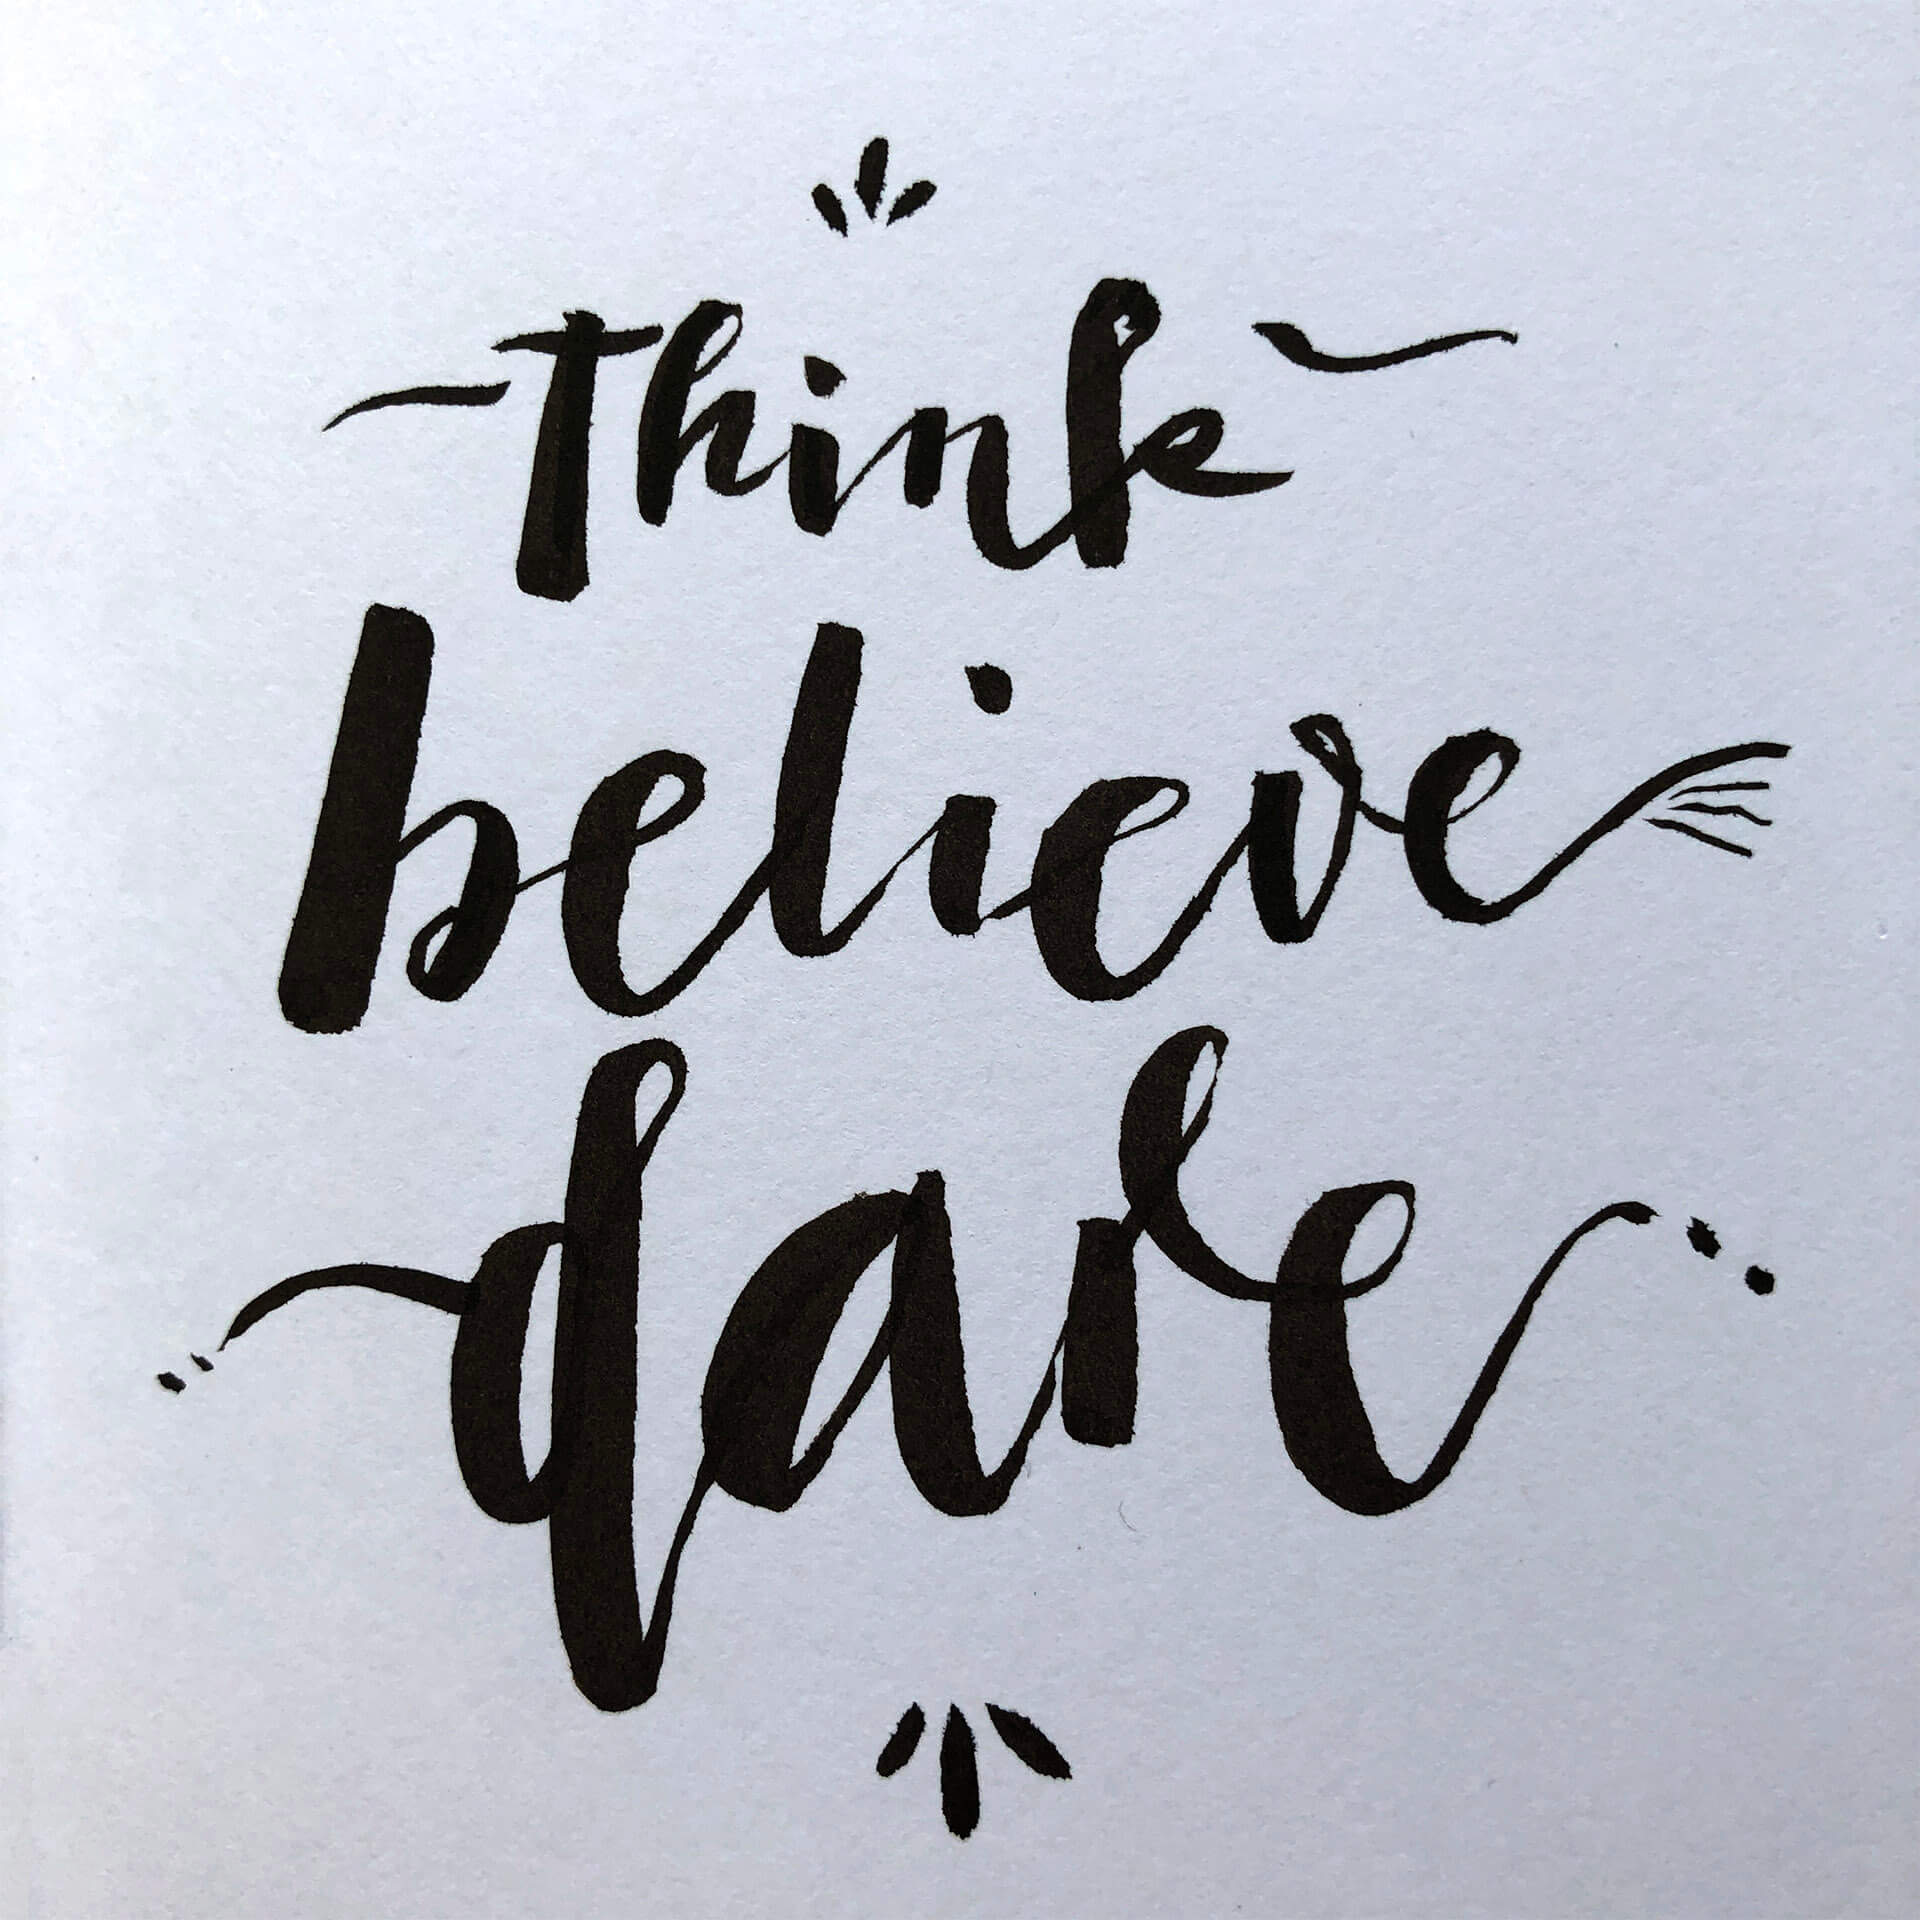 LA_ThinkBelieveDare_1920